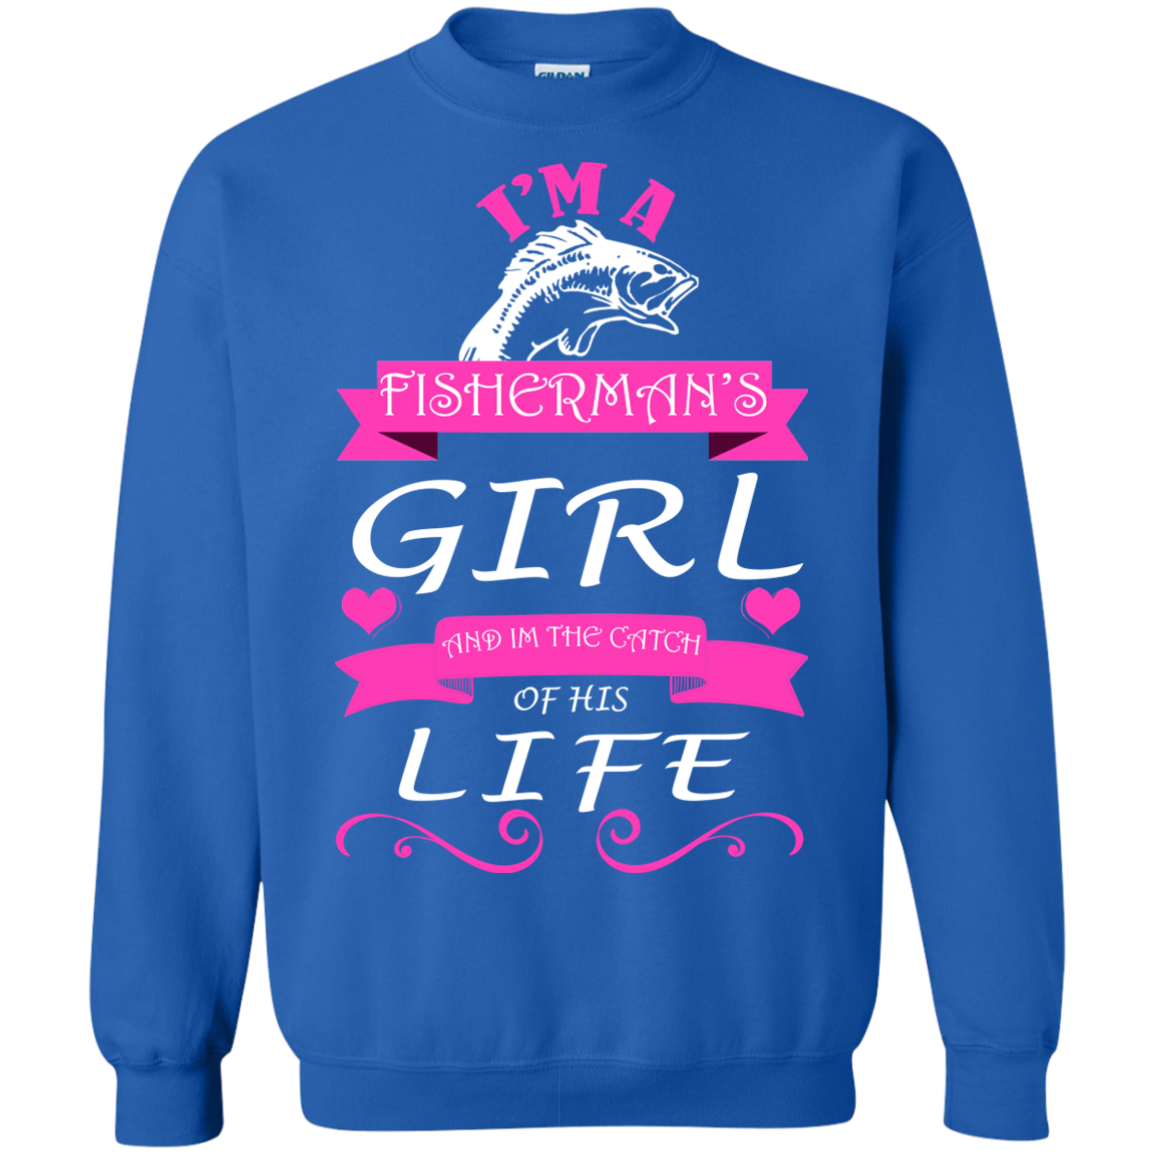 Im A Fishermans Girl And The Catch Of His Life Sweatshirts